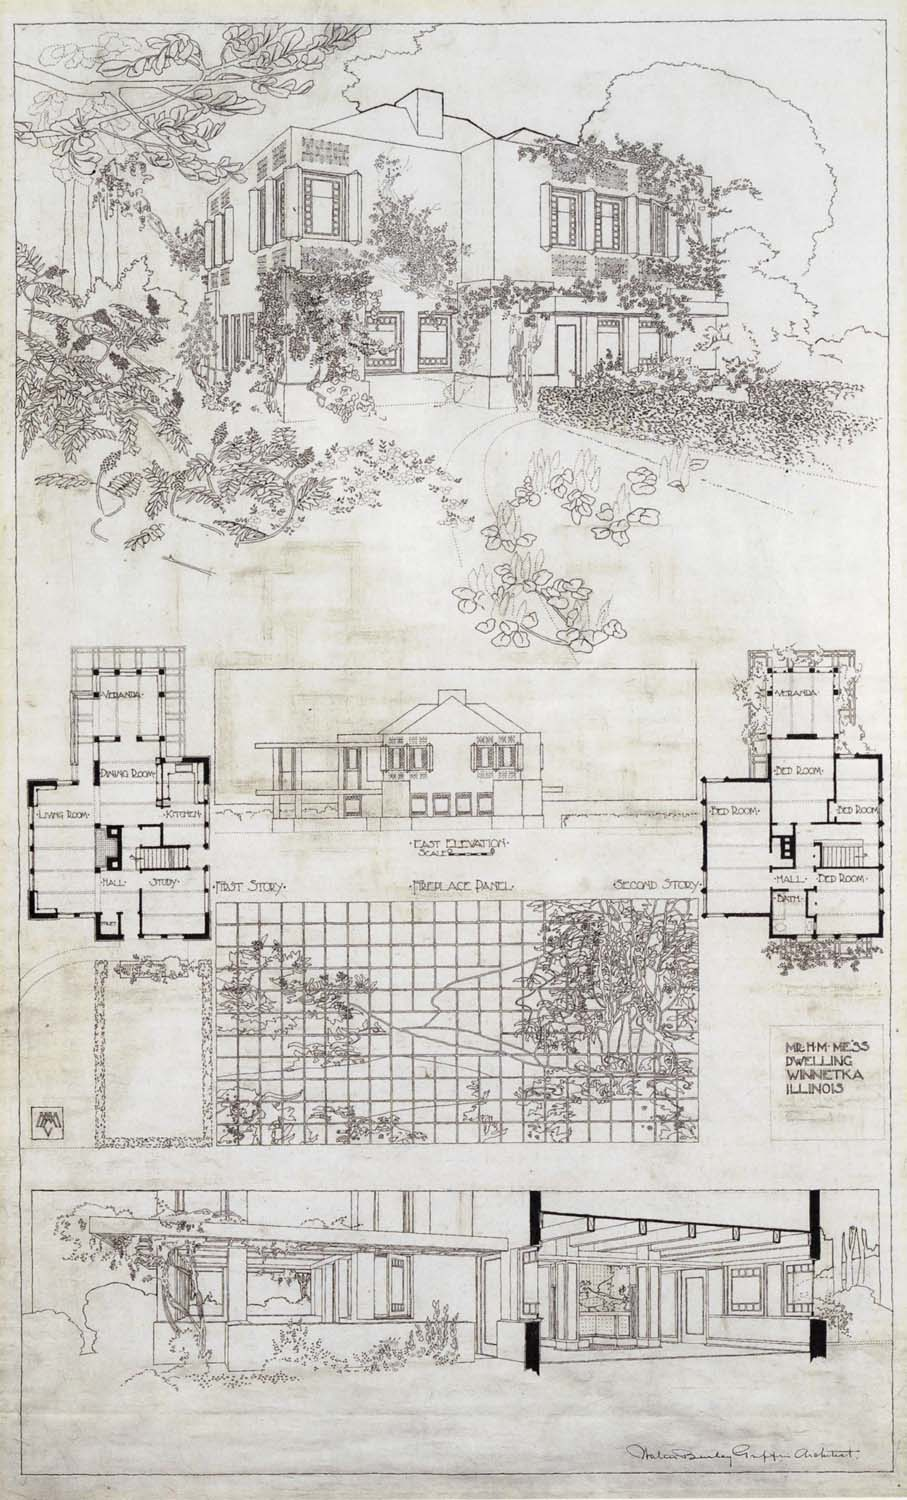 H.M. Mess Dwelling, Winnetka IL,  W.B. Griffin Architect, 1912